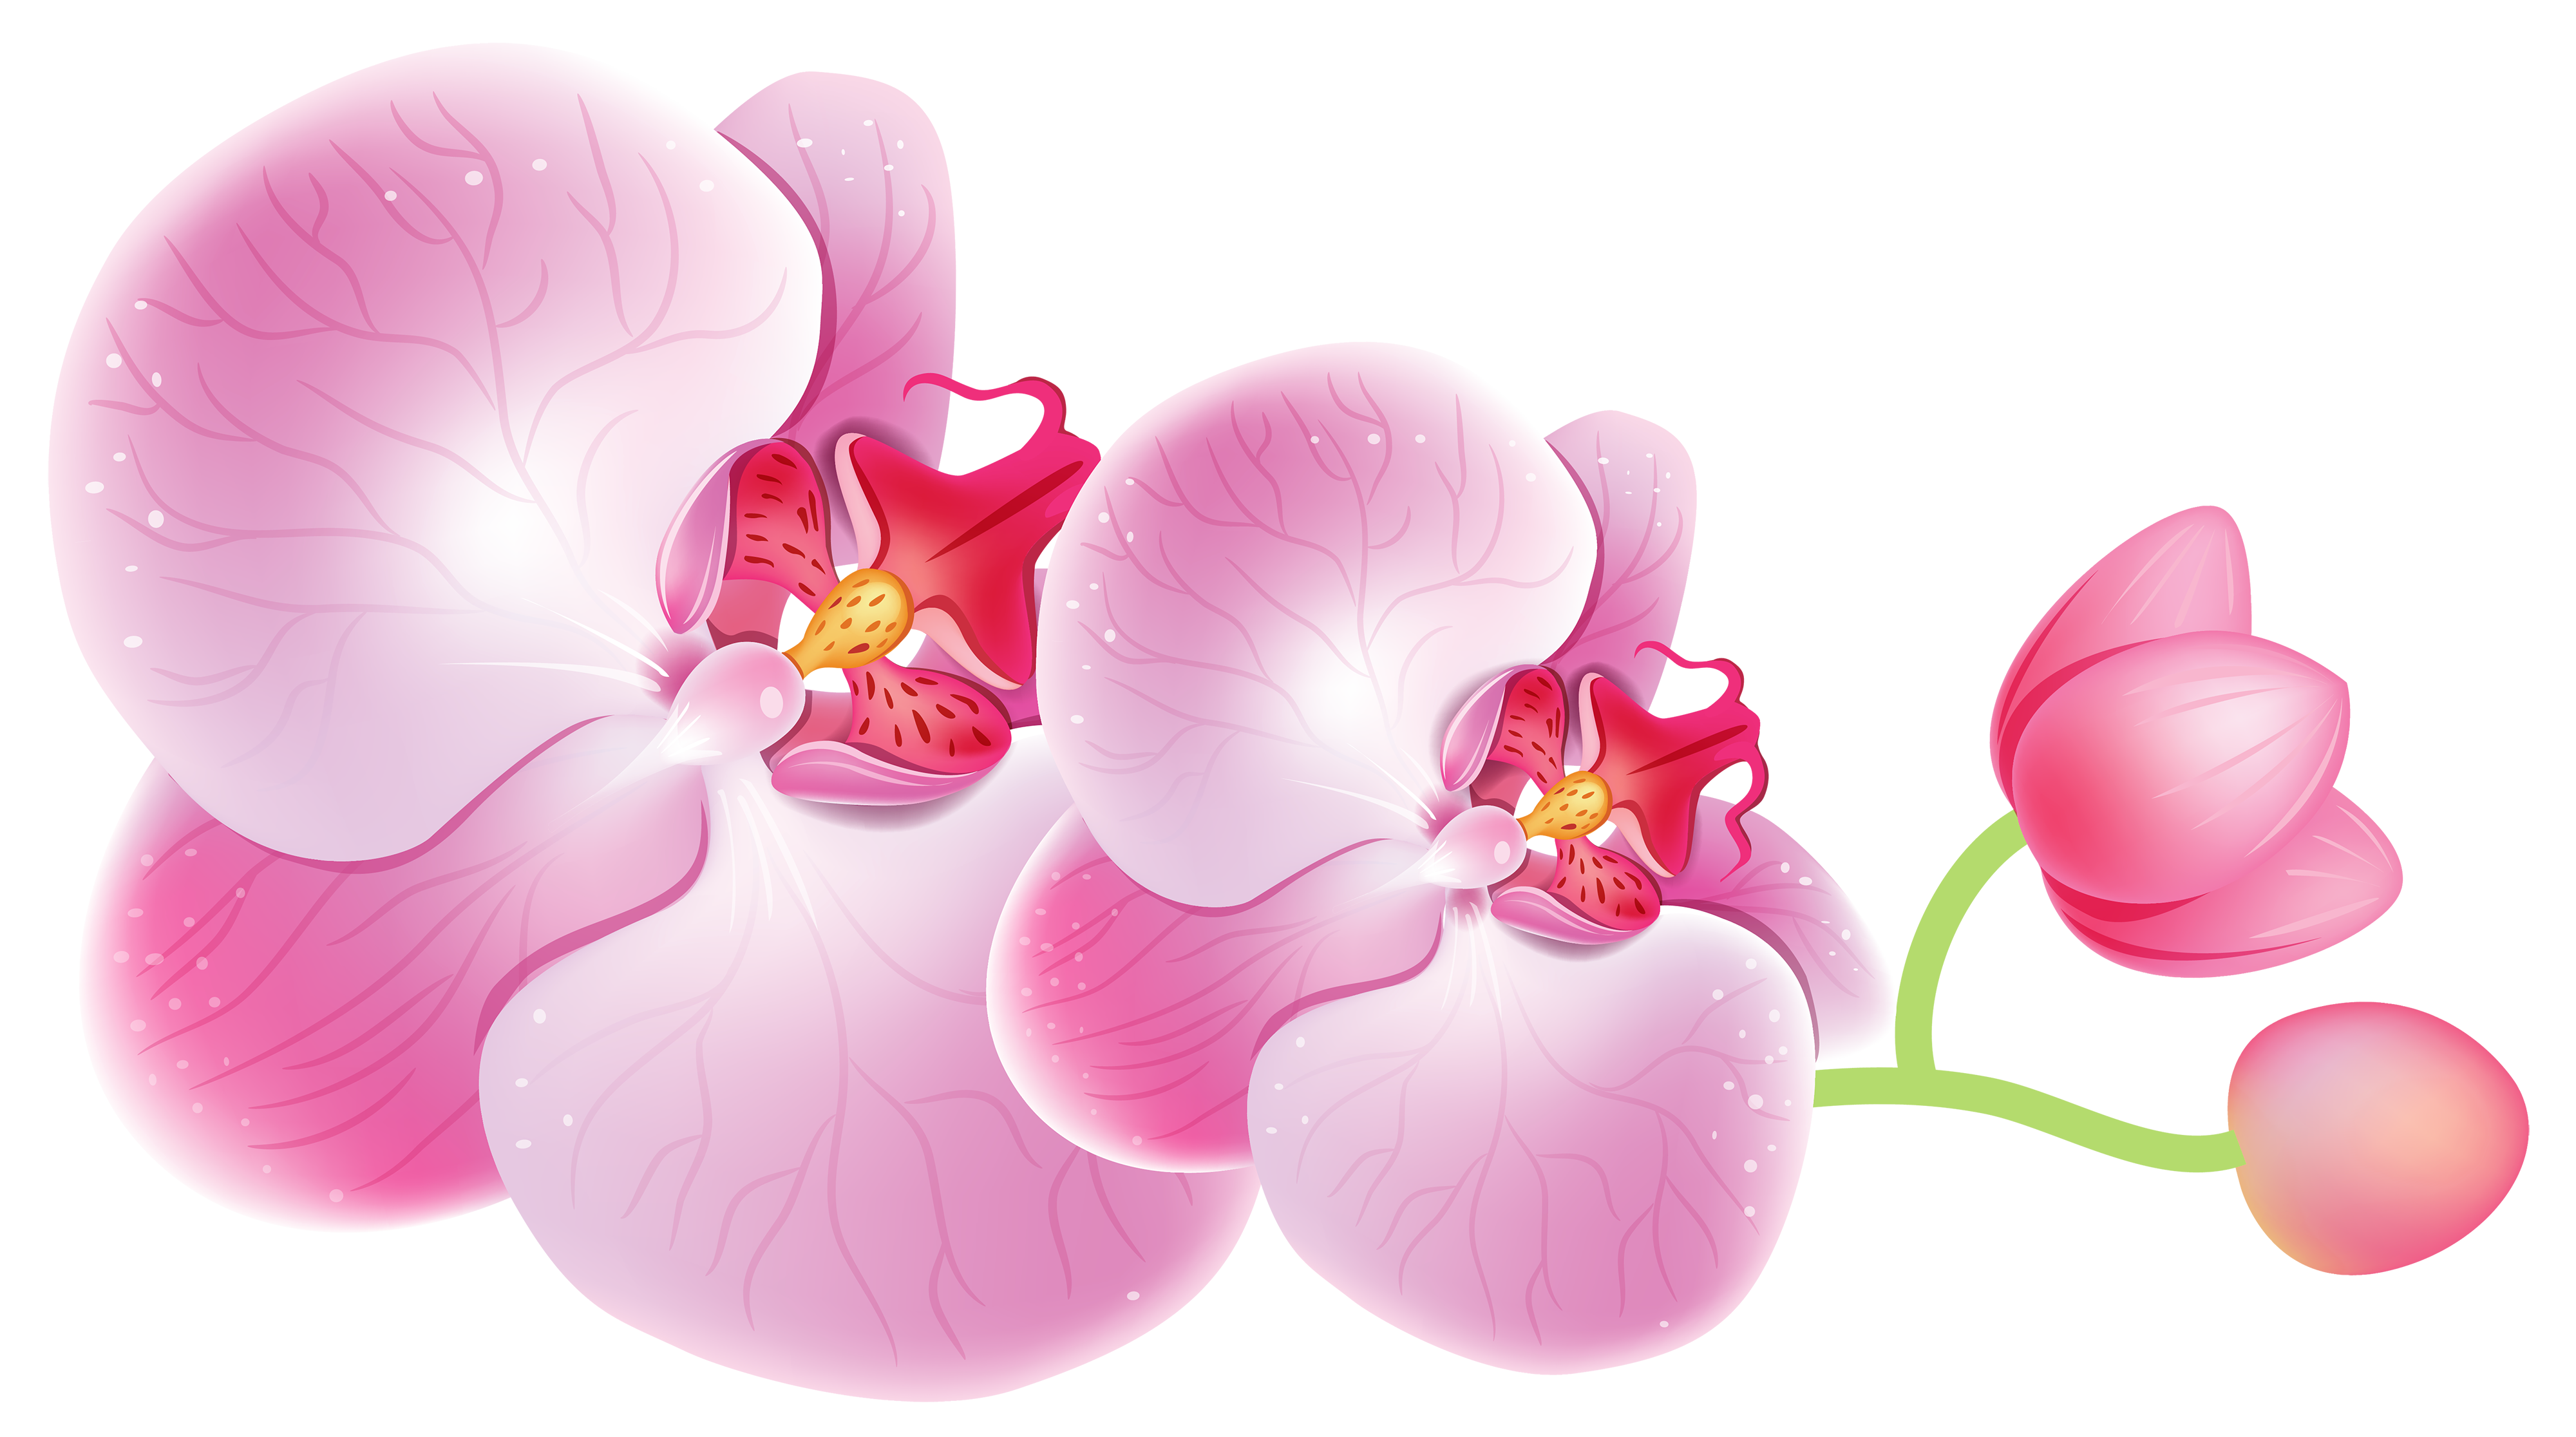 Orchid Flower Clipart.